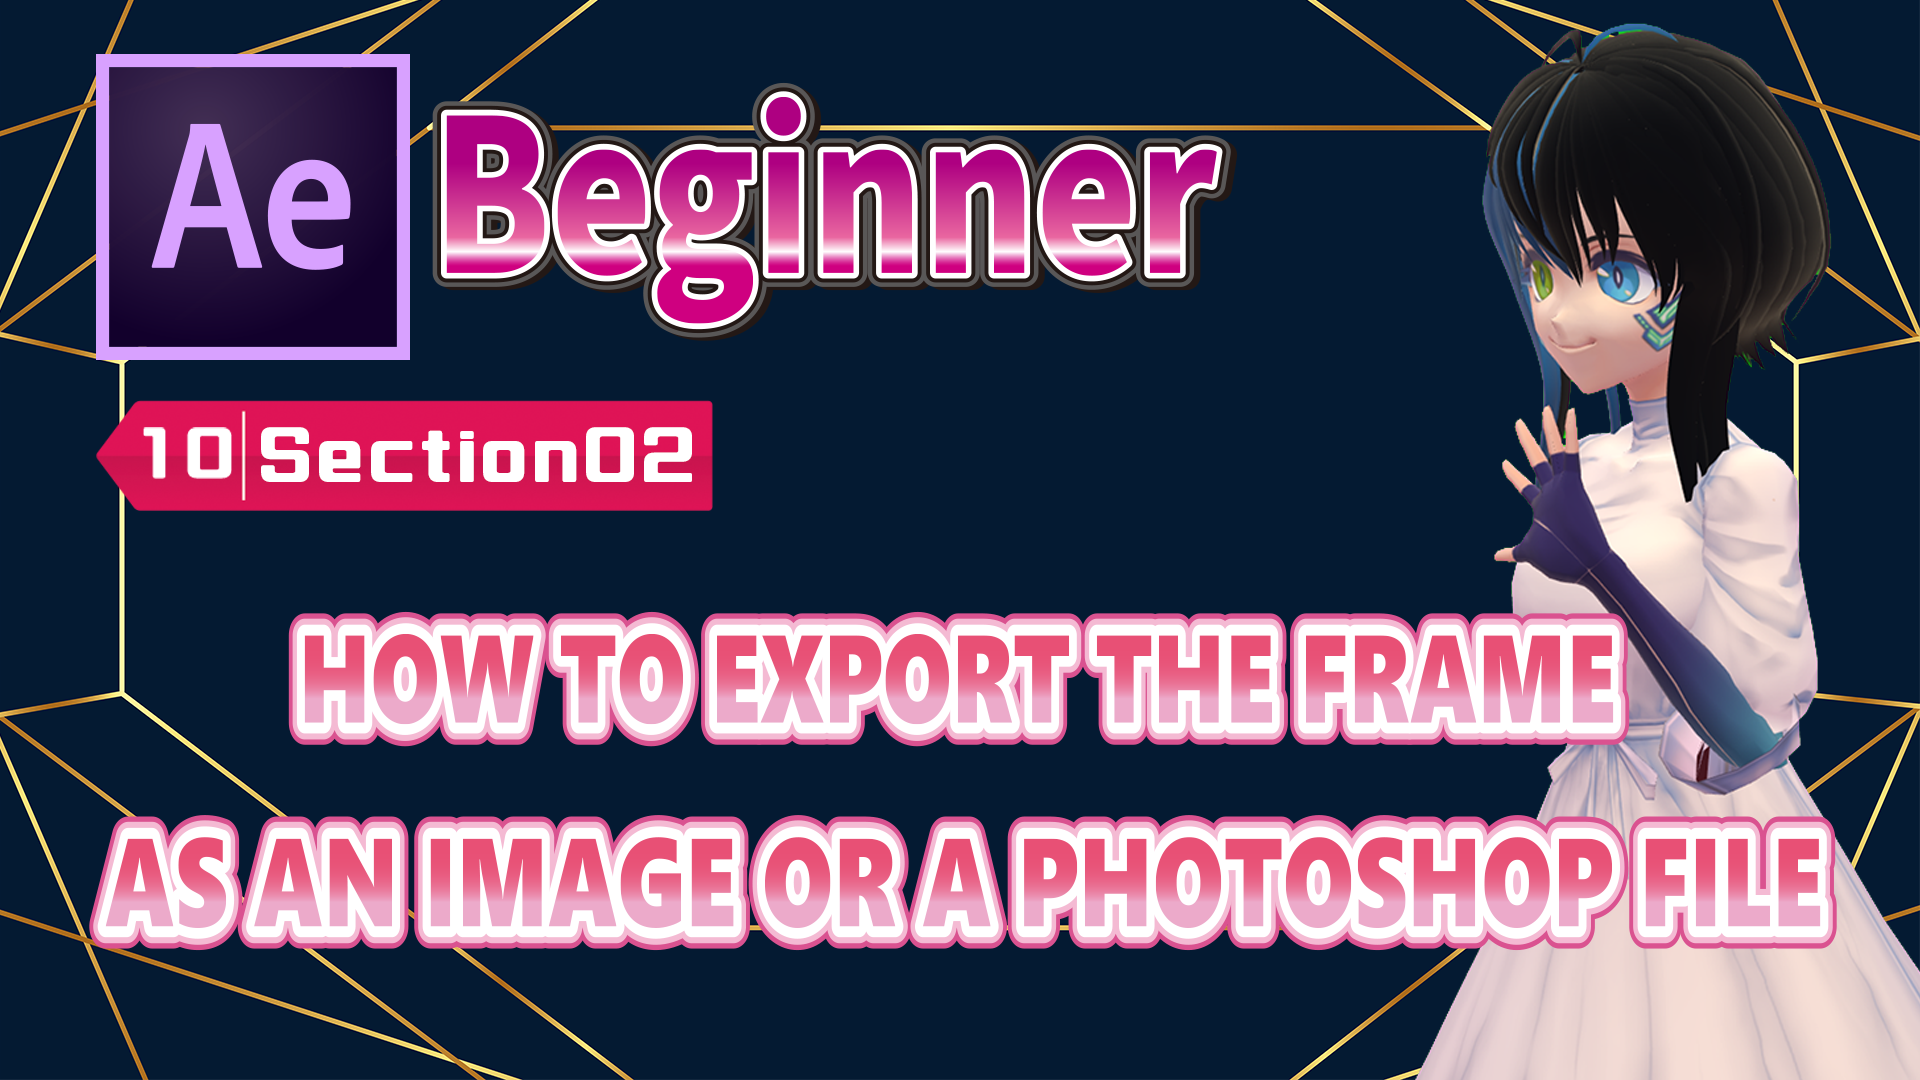 HOW TO EXPORT THE FRAME AS AN IMAGE OR A PHOTOSHOP FILE